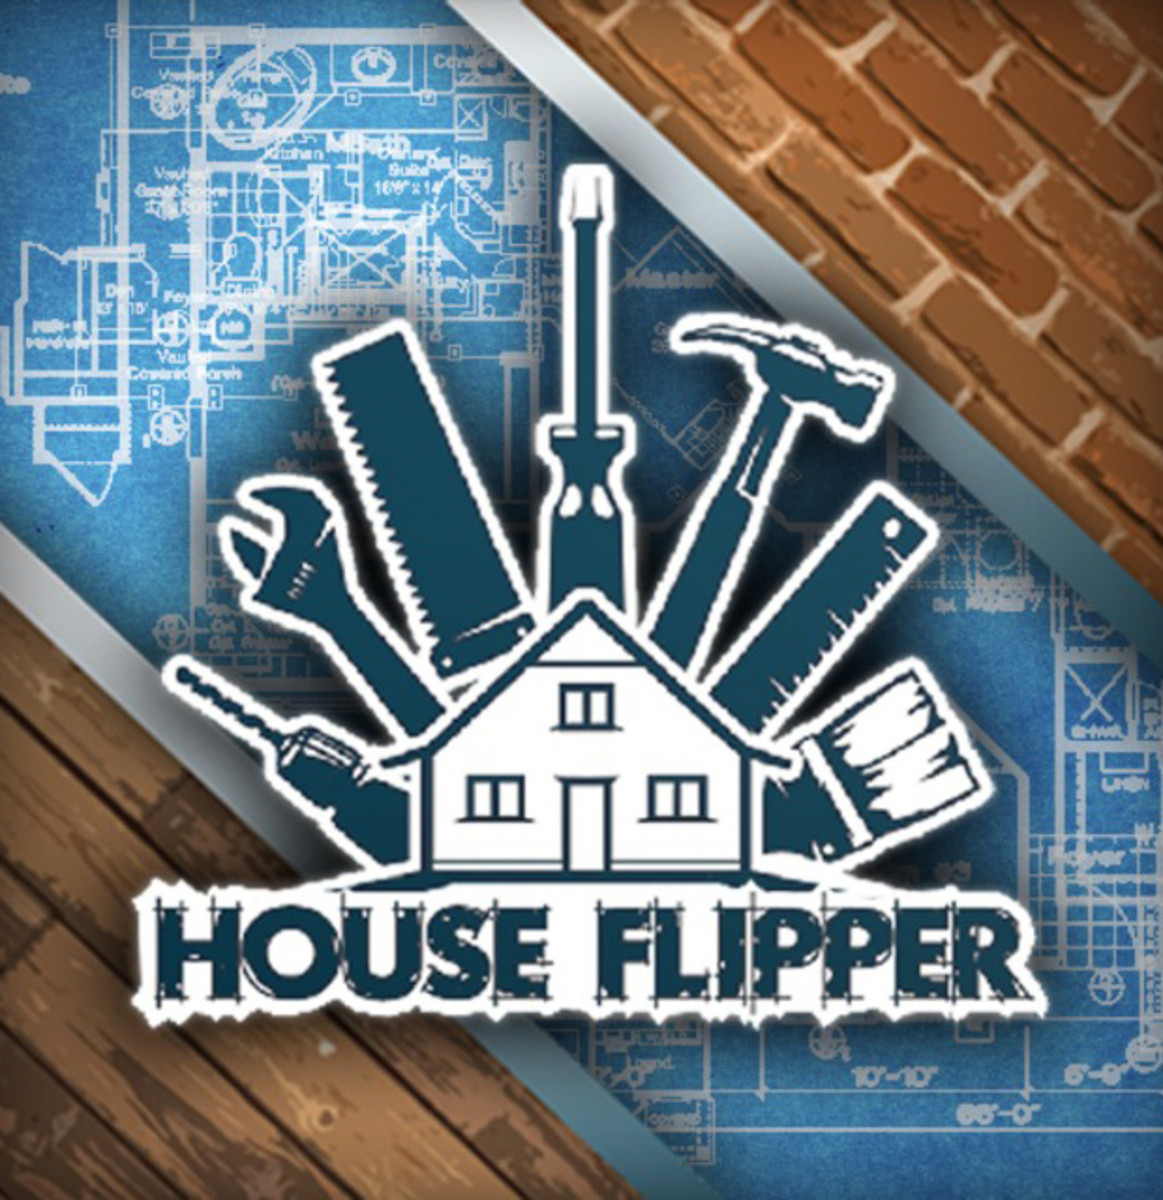 House Flipper Game Review